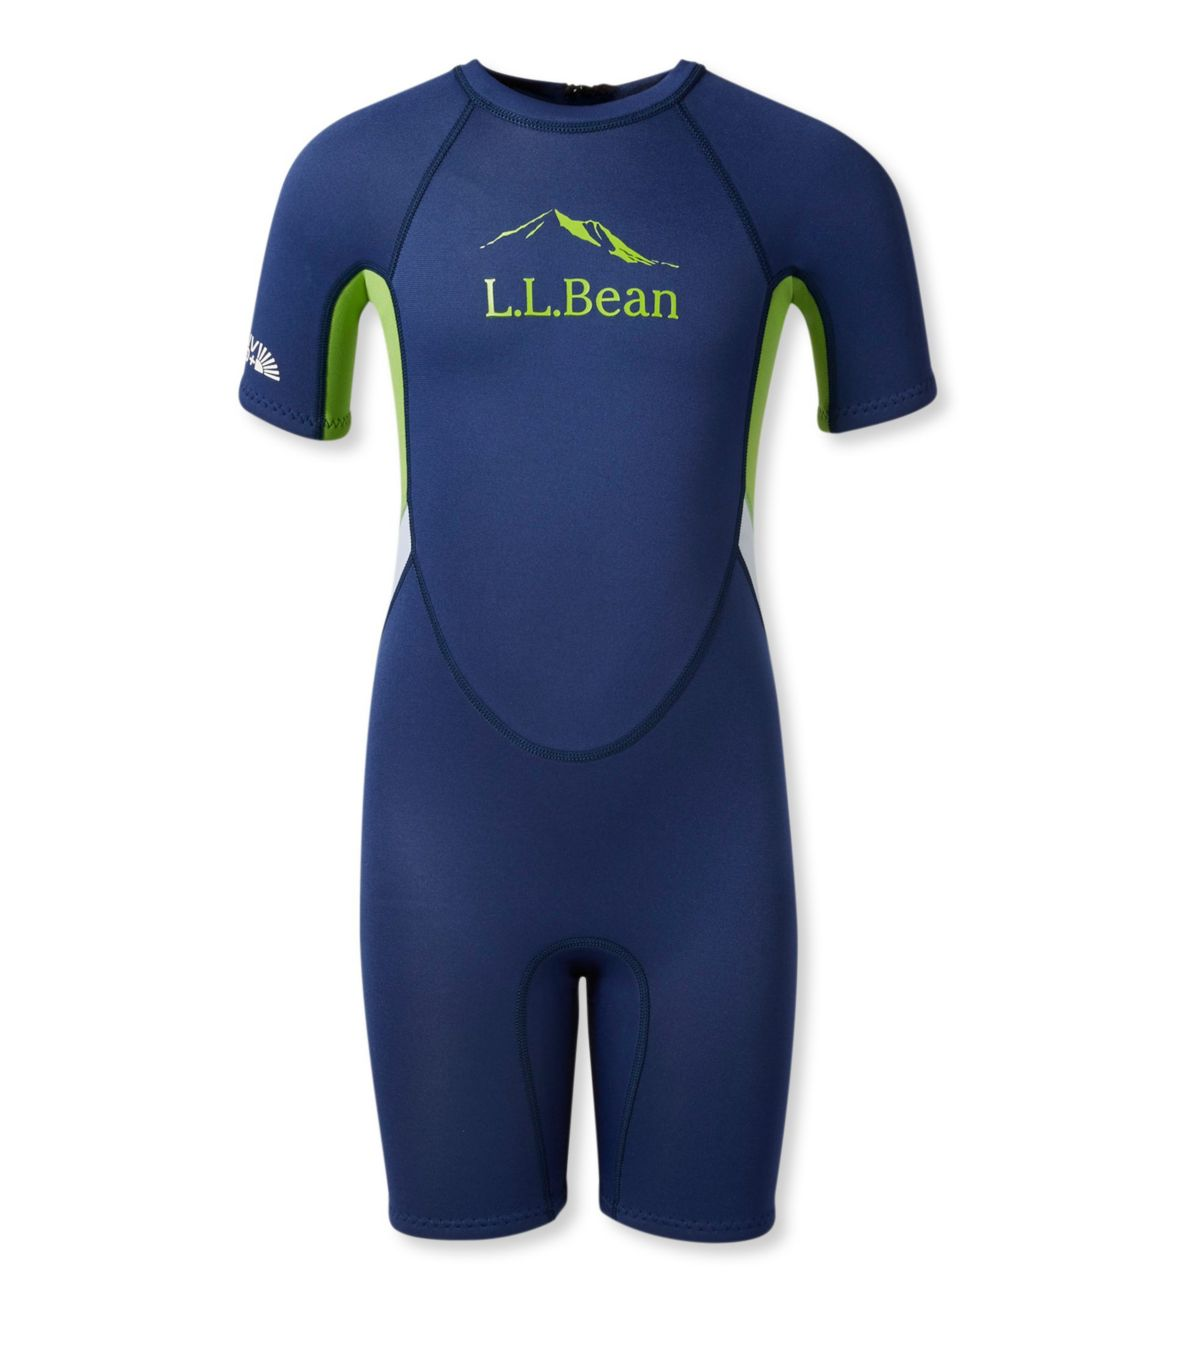 Kids' L.L.Bean Shorty Wet Suit